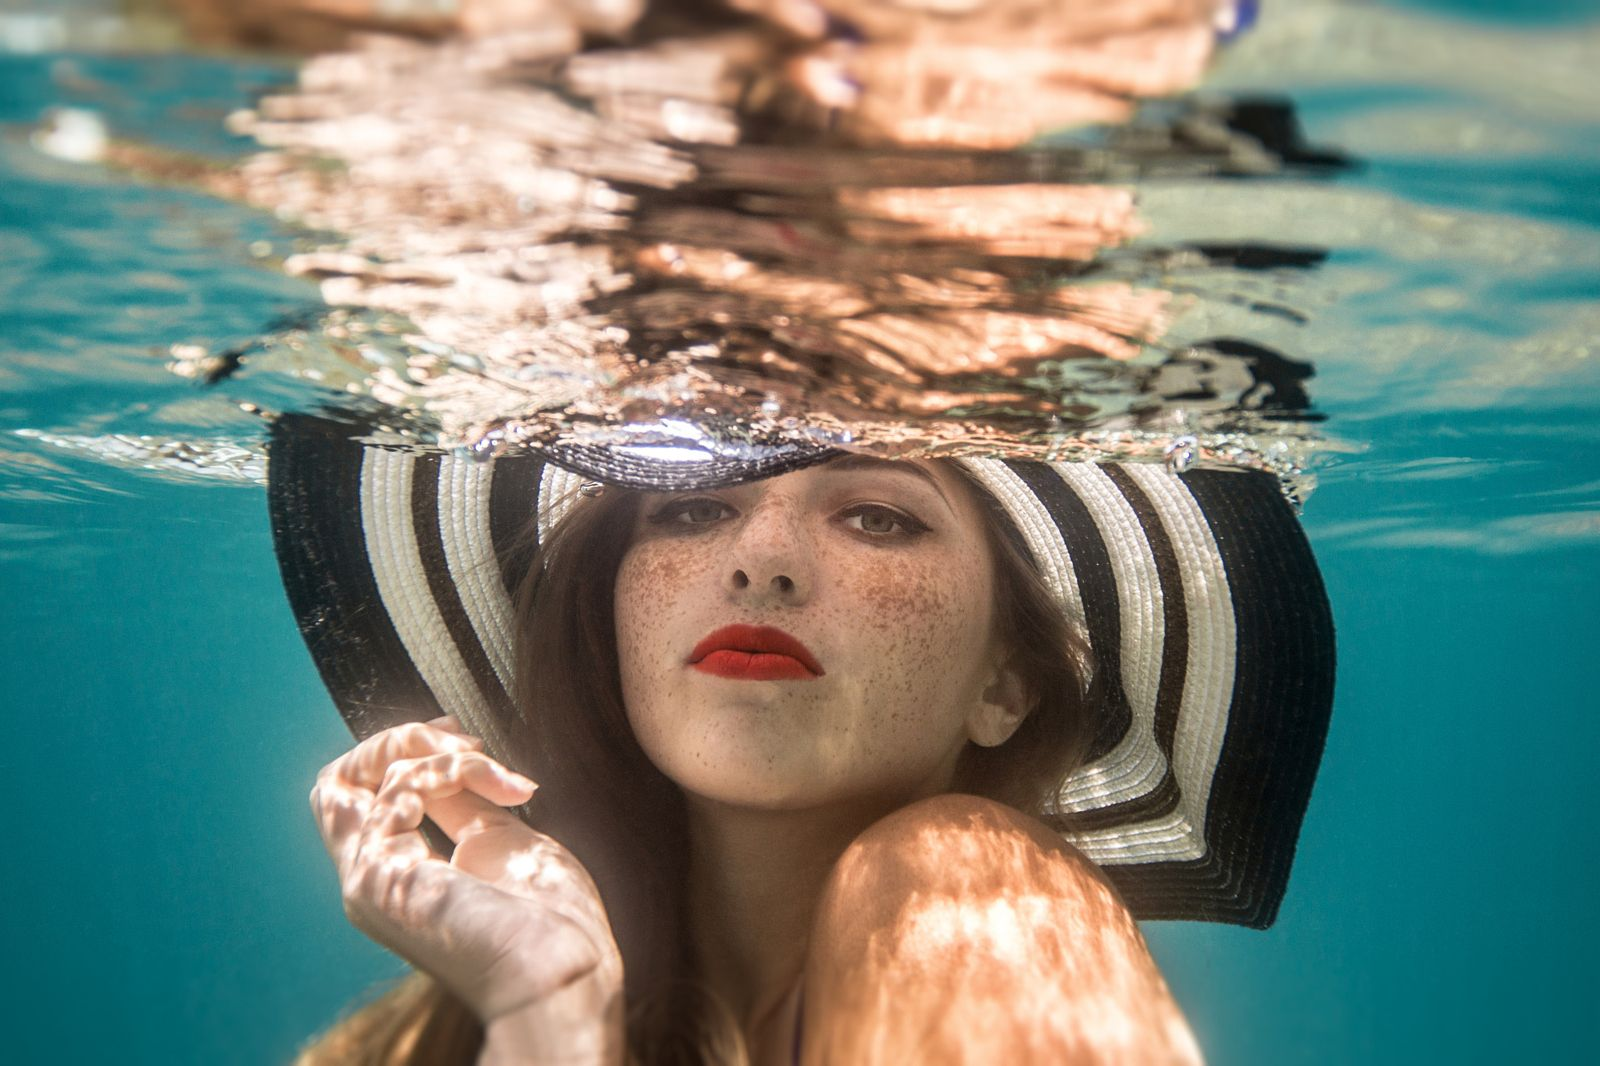 Underwater portraiture is extremely difficult, but these 10 tips from the talented Jenna Martin will help you skip some of the growing pains and get right to capturing beautiful images.